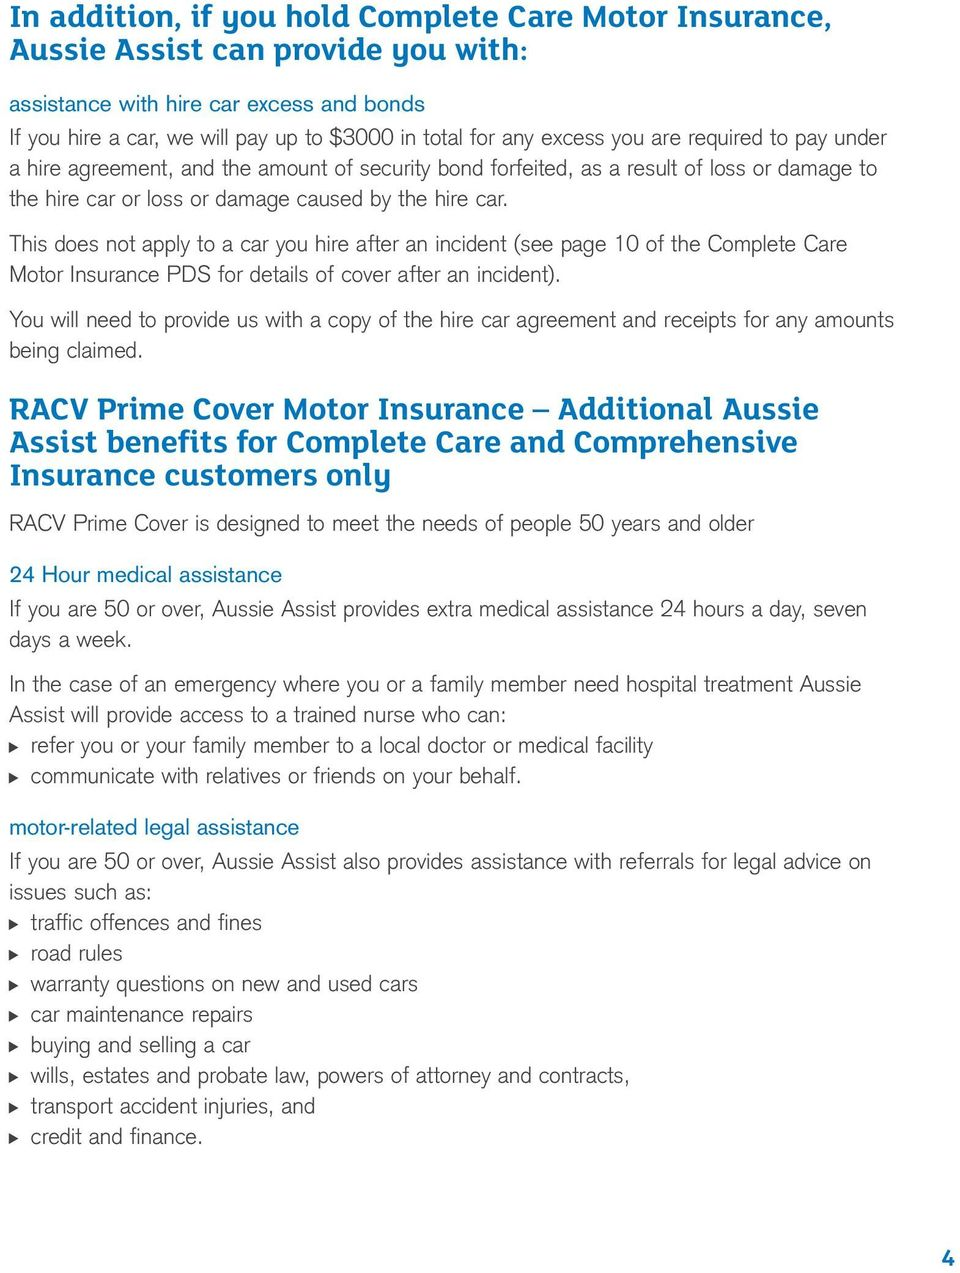 This does not apply to a car you hire after an incident (see page 10 of the Complete Care Motor Insurance PDS for details of cover after an incident).